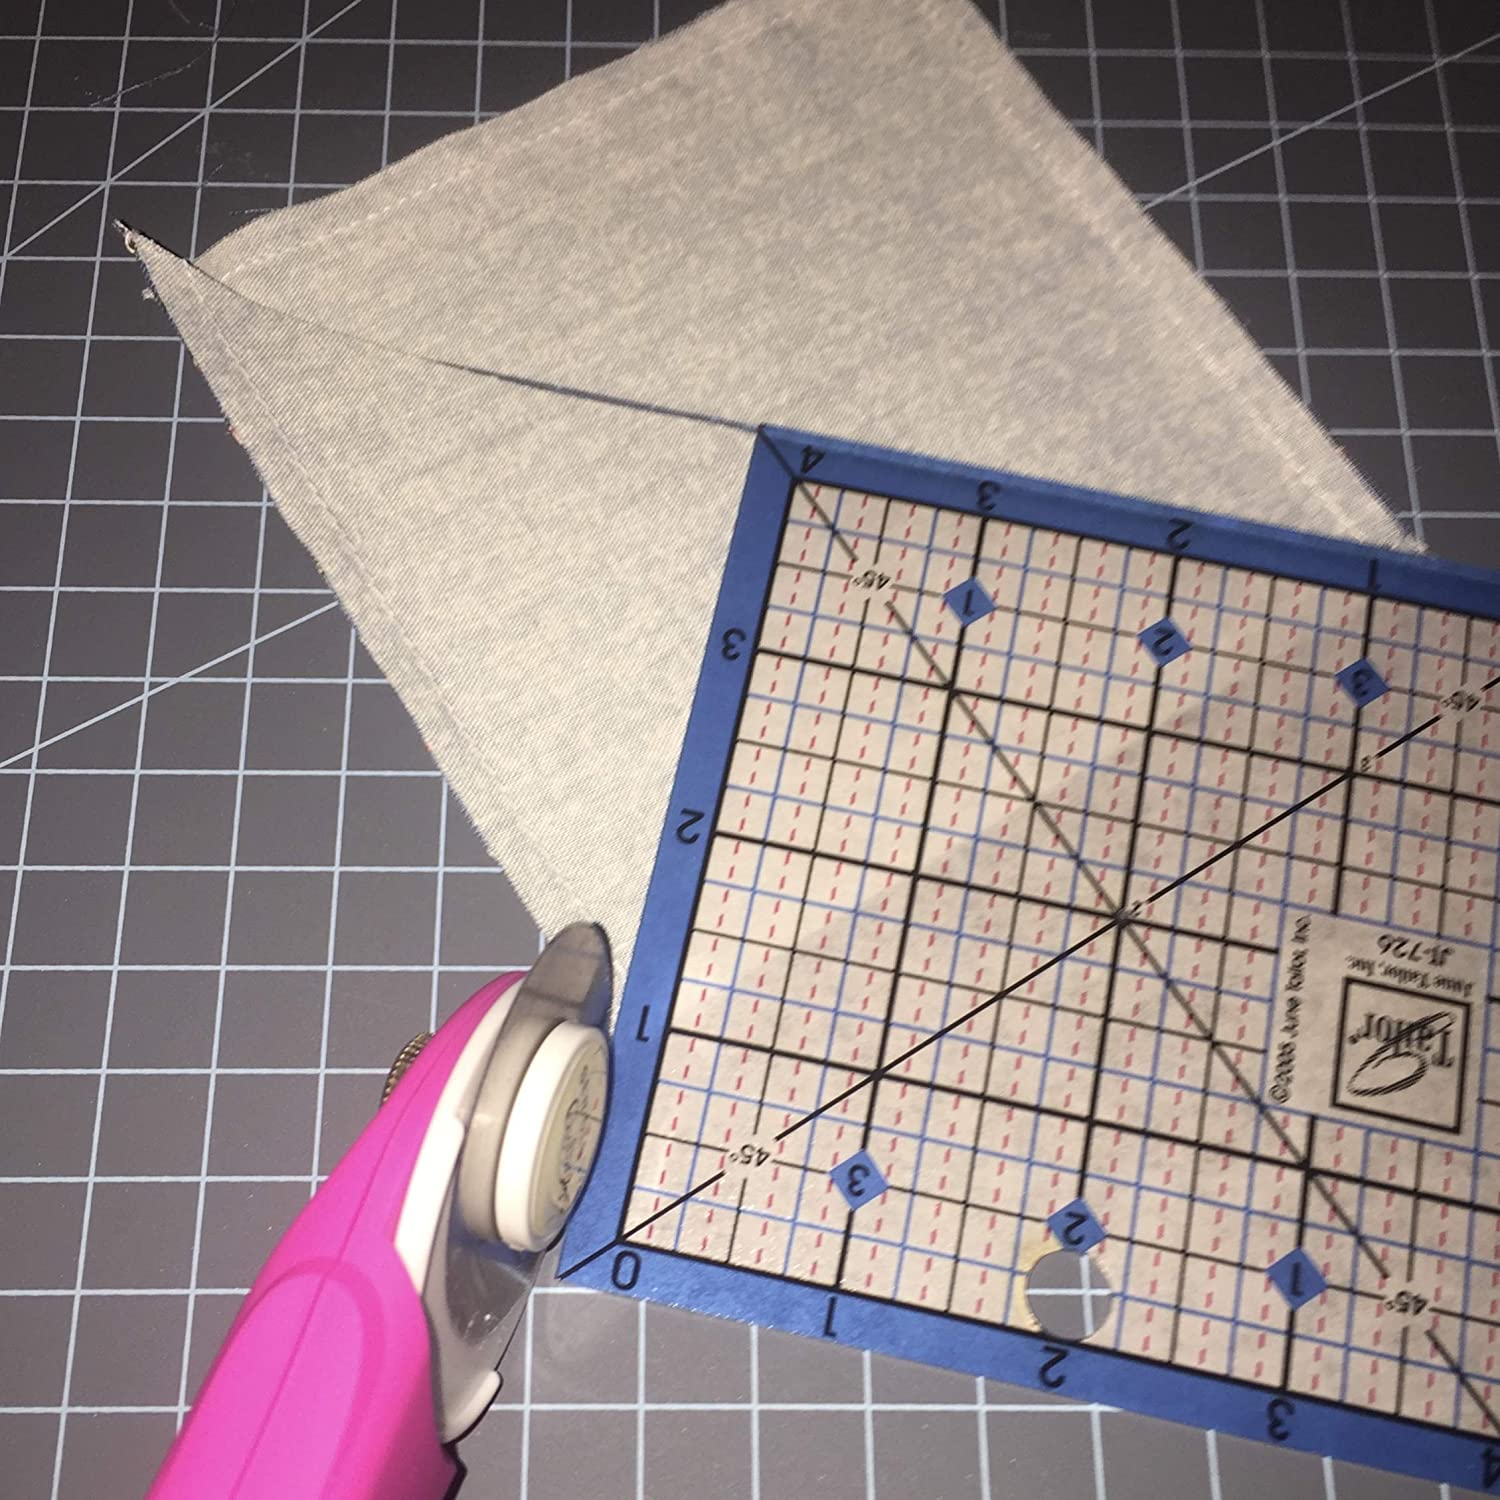 Covered by Grace Beginner Sewing Notions as Gifts for Quilters